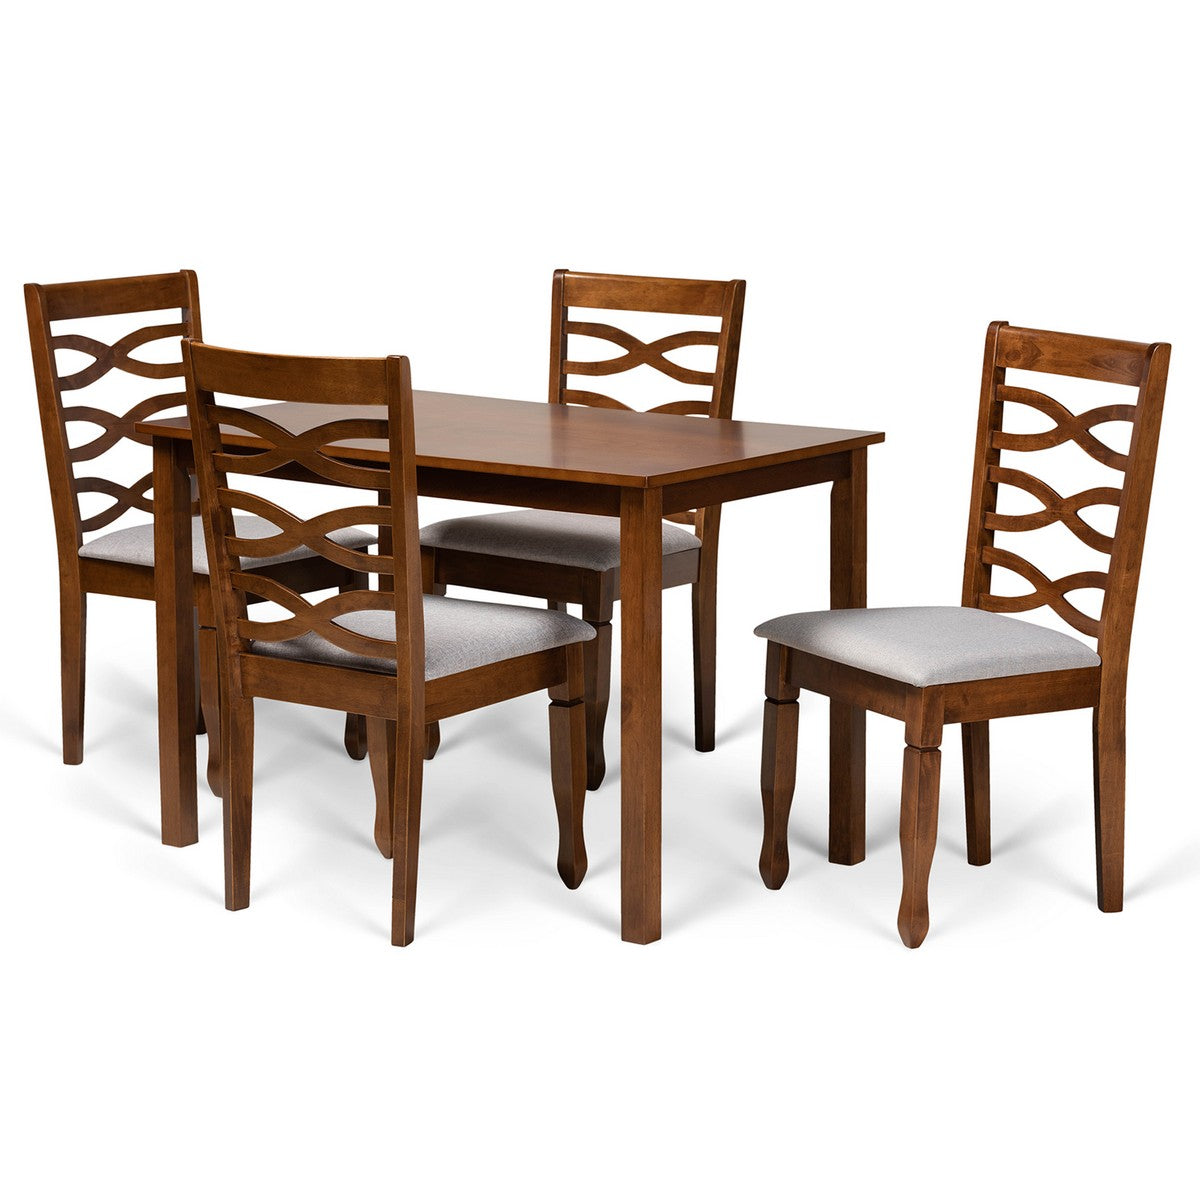 Baxton Studio Mirna Modern and Contemporary Grey Fabric Upholstered and Walnut Brown Finished Wood 5-Piece Dining Set Baxton Studio-Dining Sets-Minimal And Modern - 1